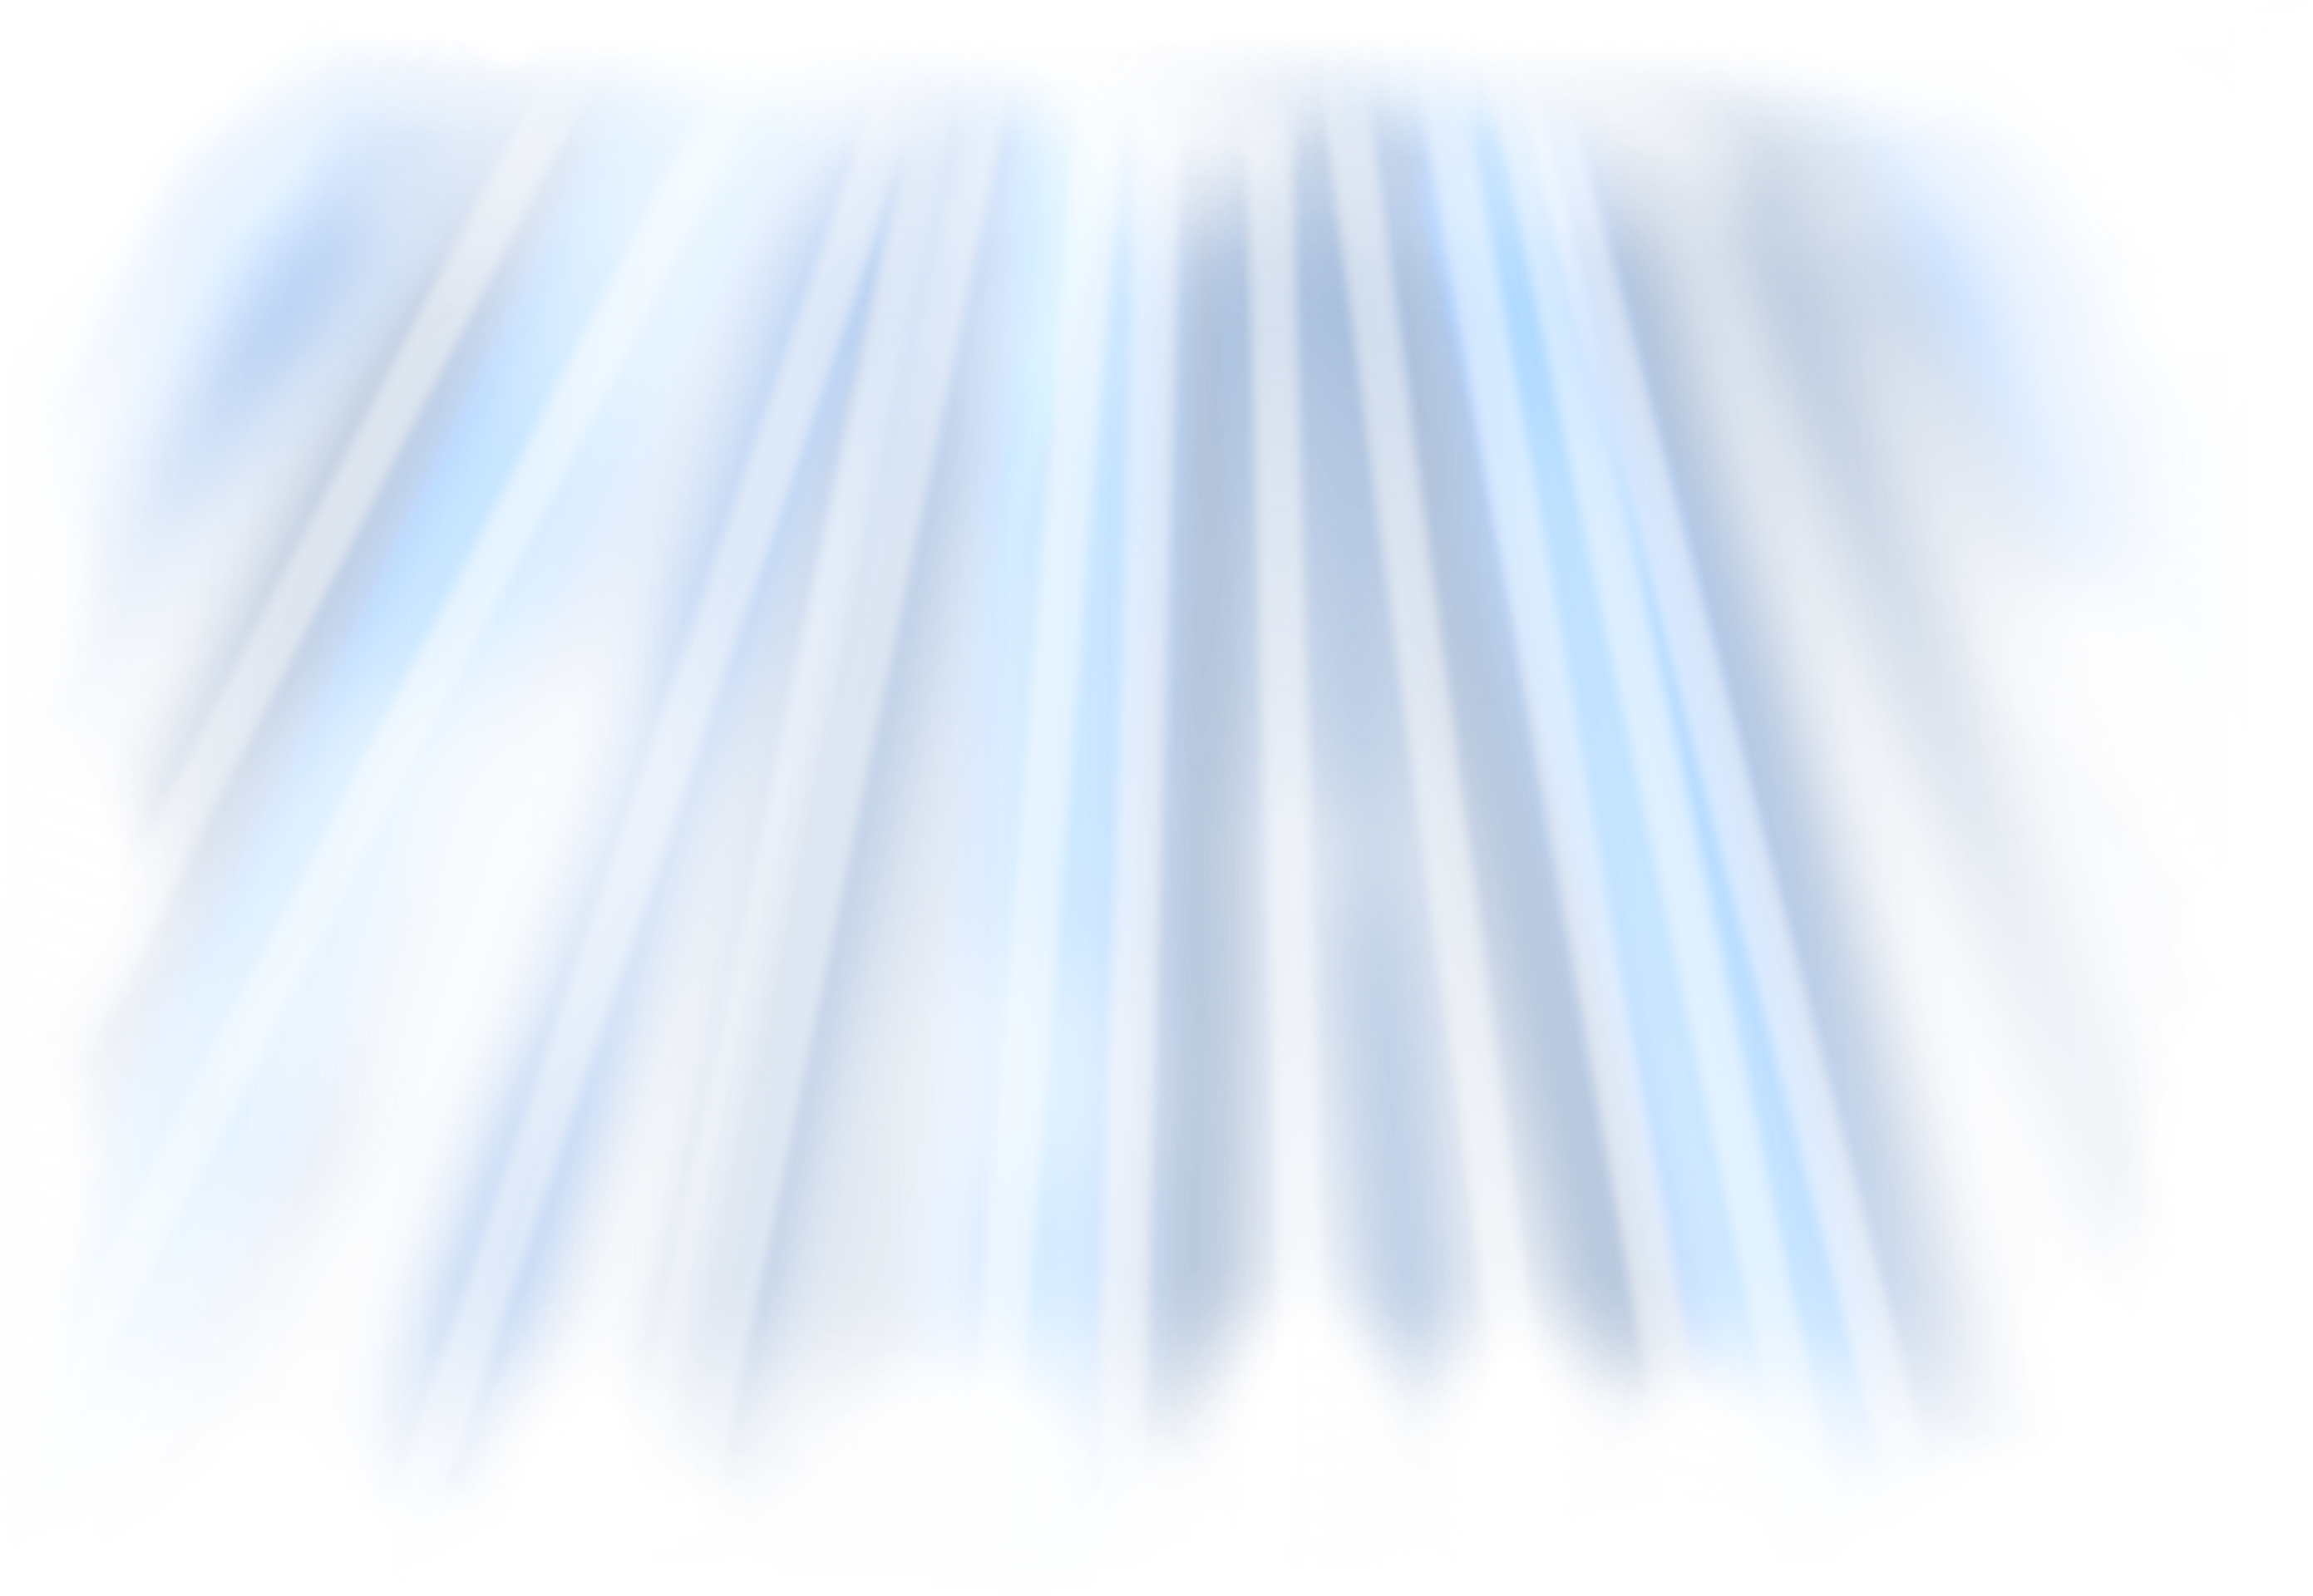 Png rays of light. Lamp clipart bright